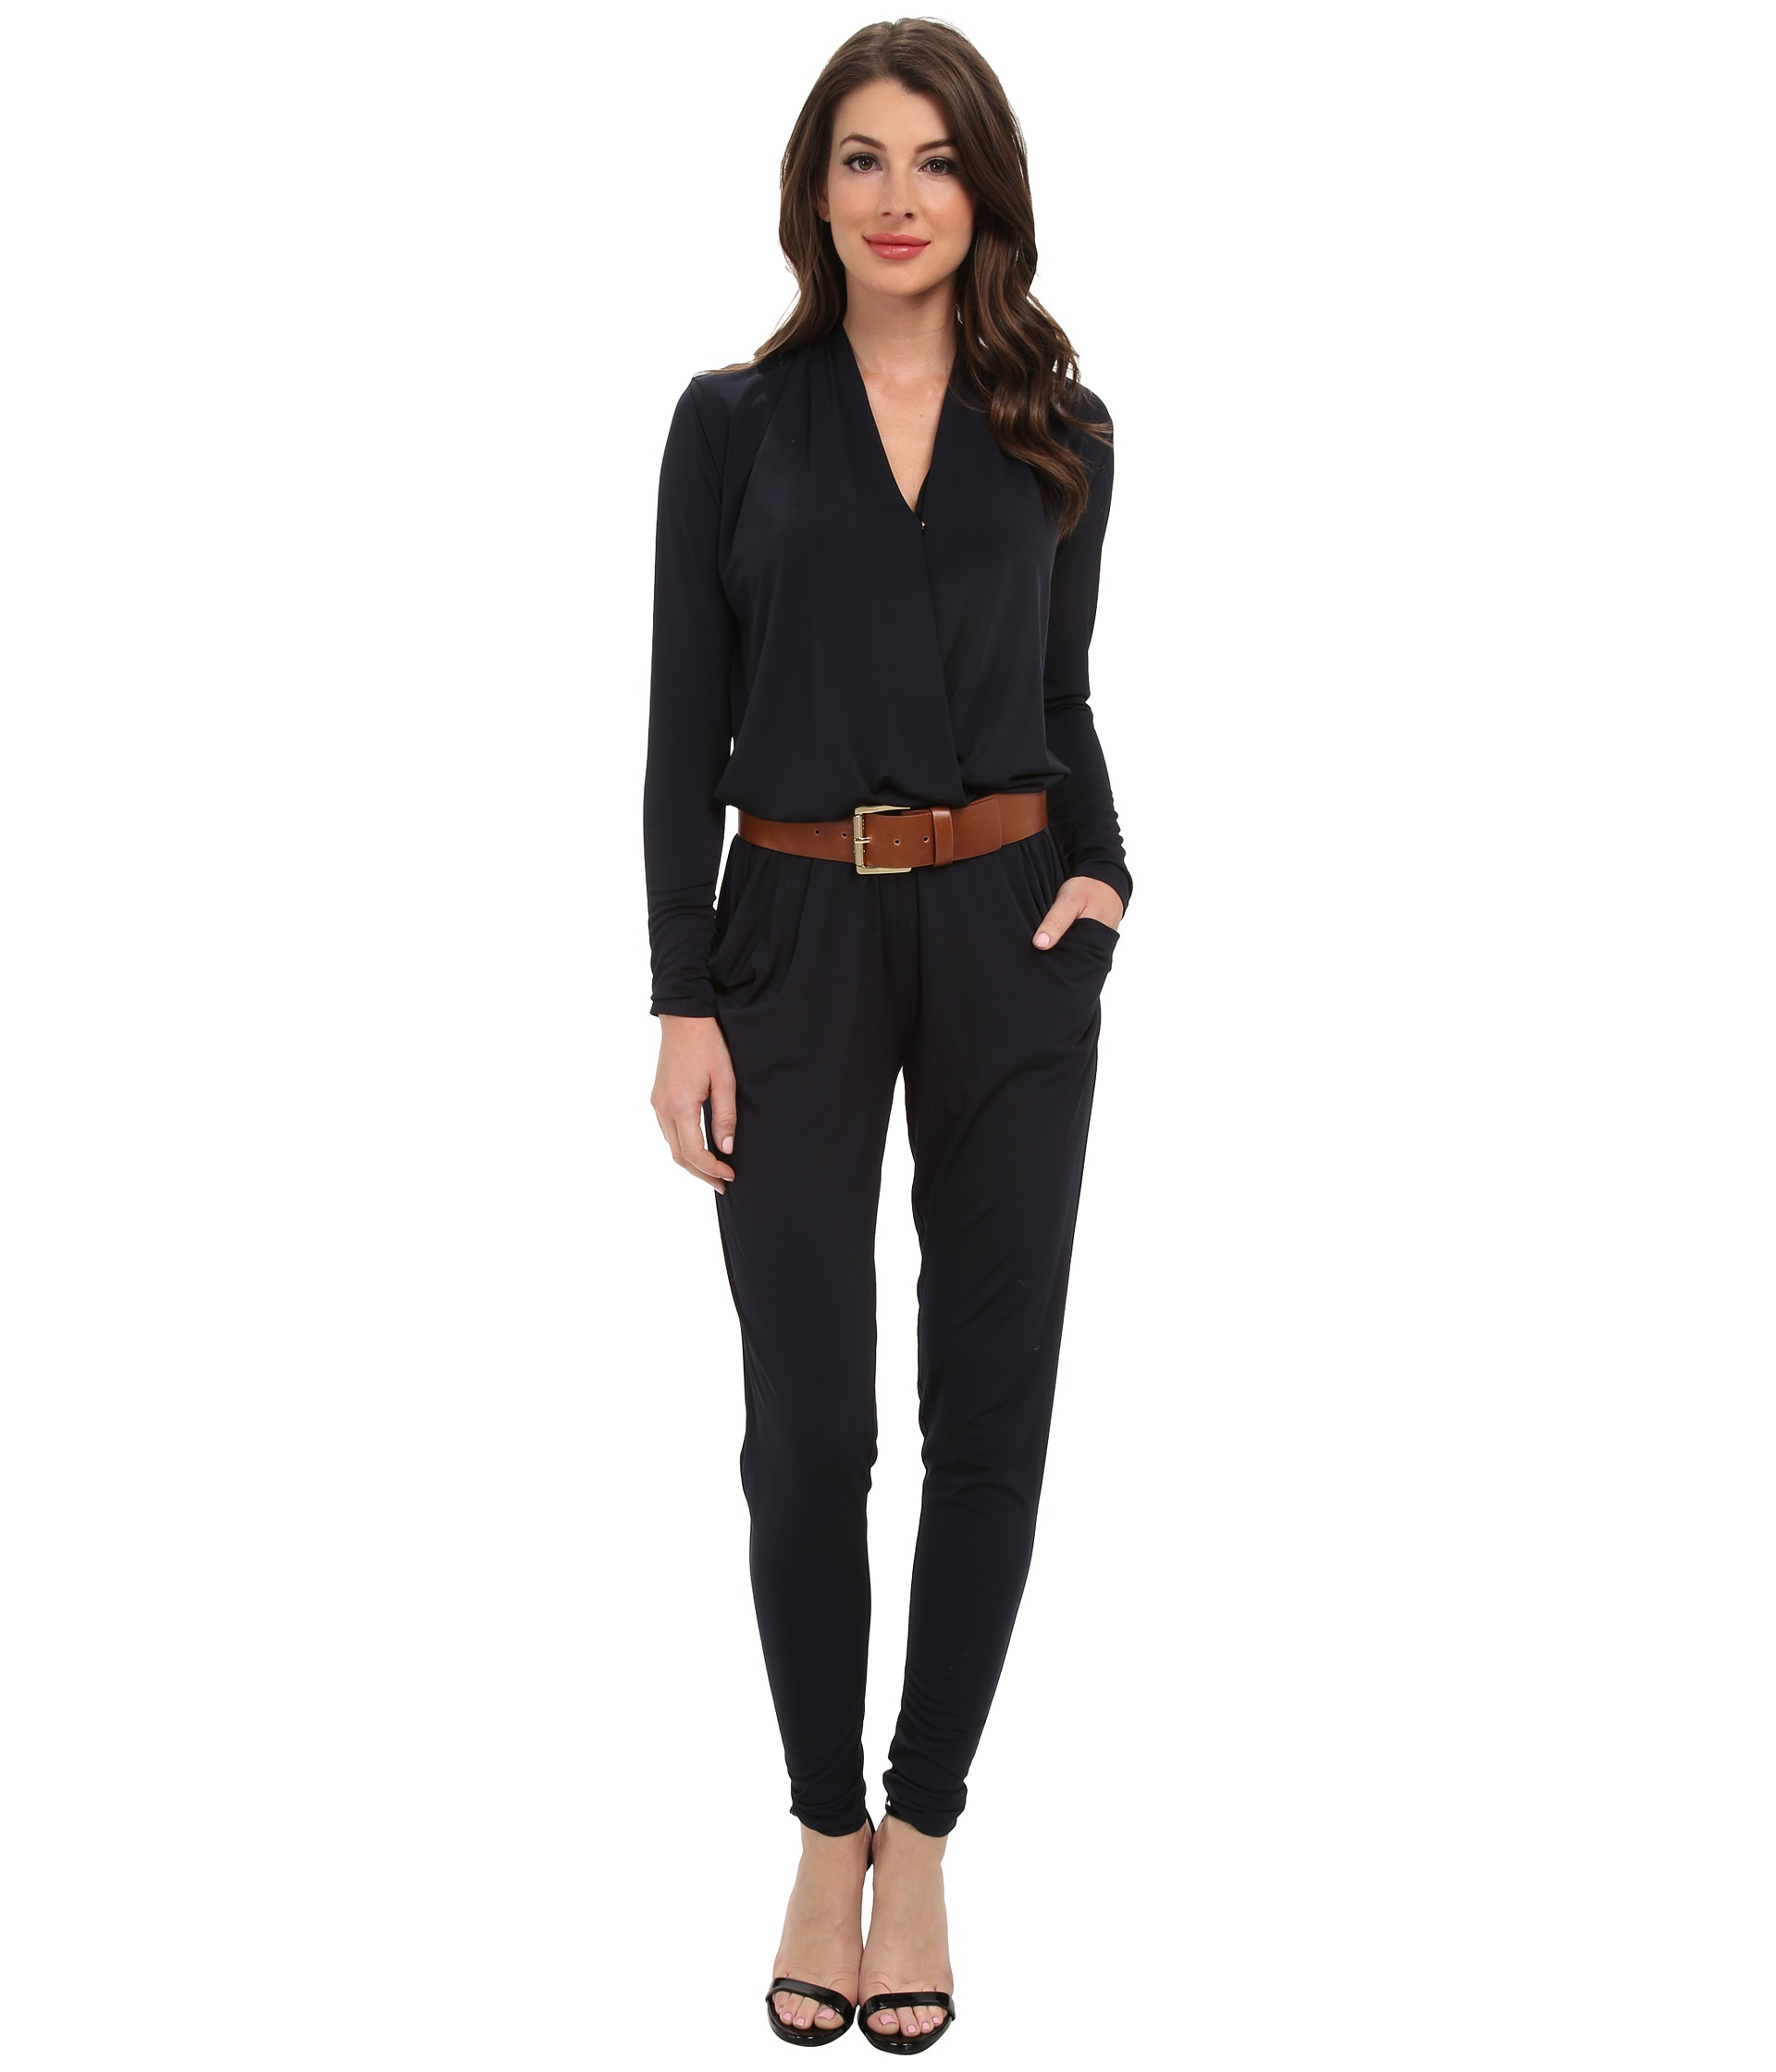 michael michael kors l s belted jumpsuit shipped free at zappos. Black Bedroom Furniture Sets. Home Design Ideas